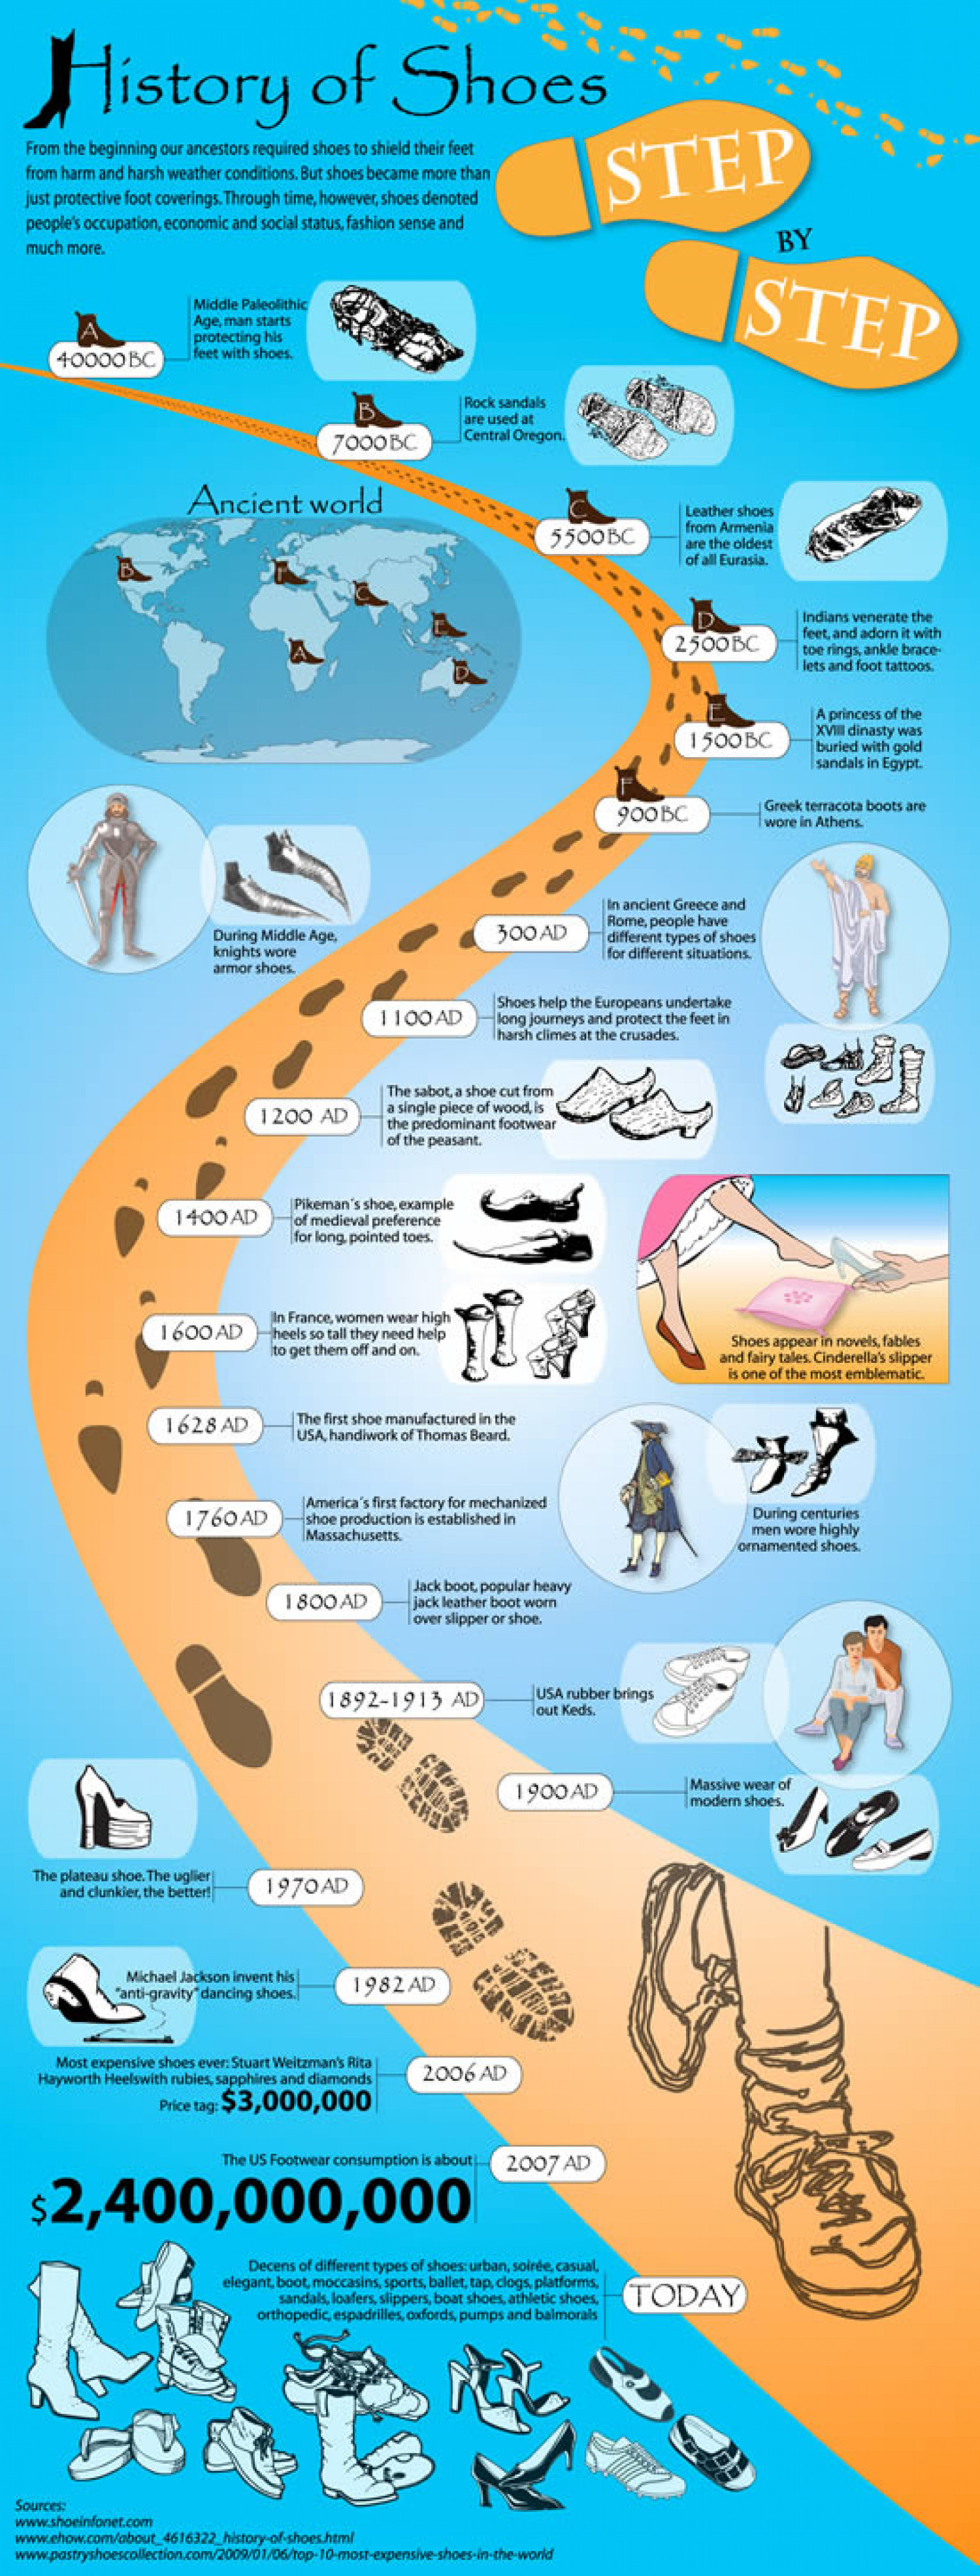 History of Shoes Infographic